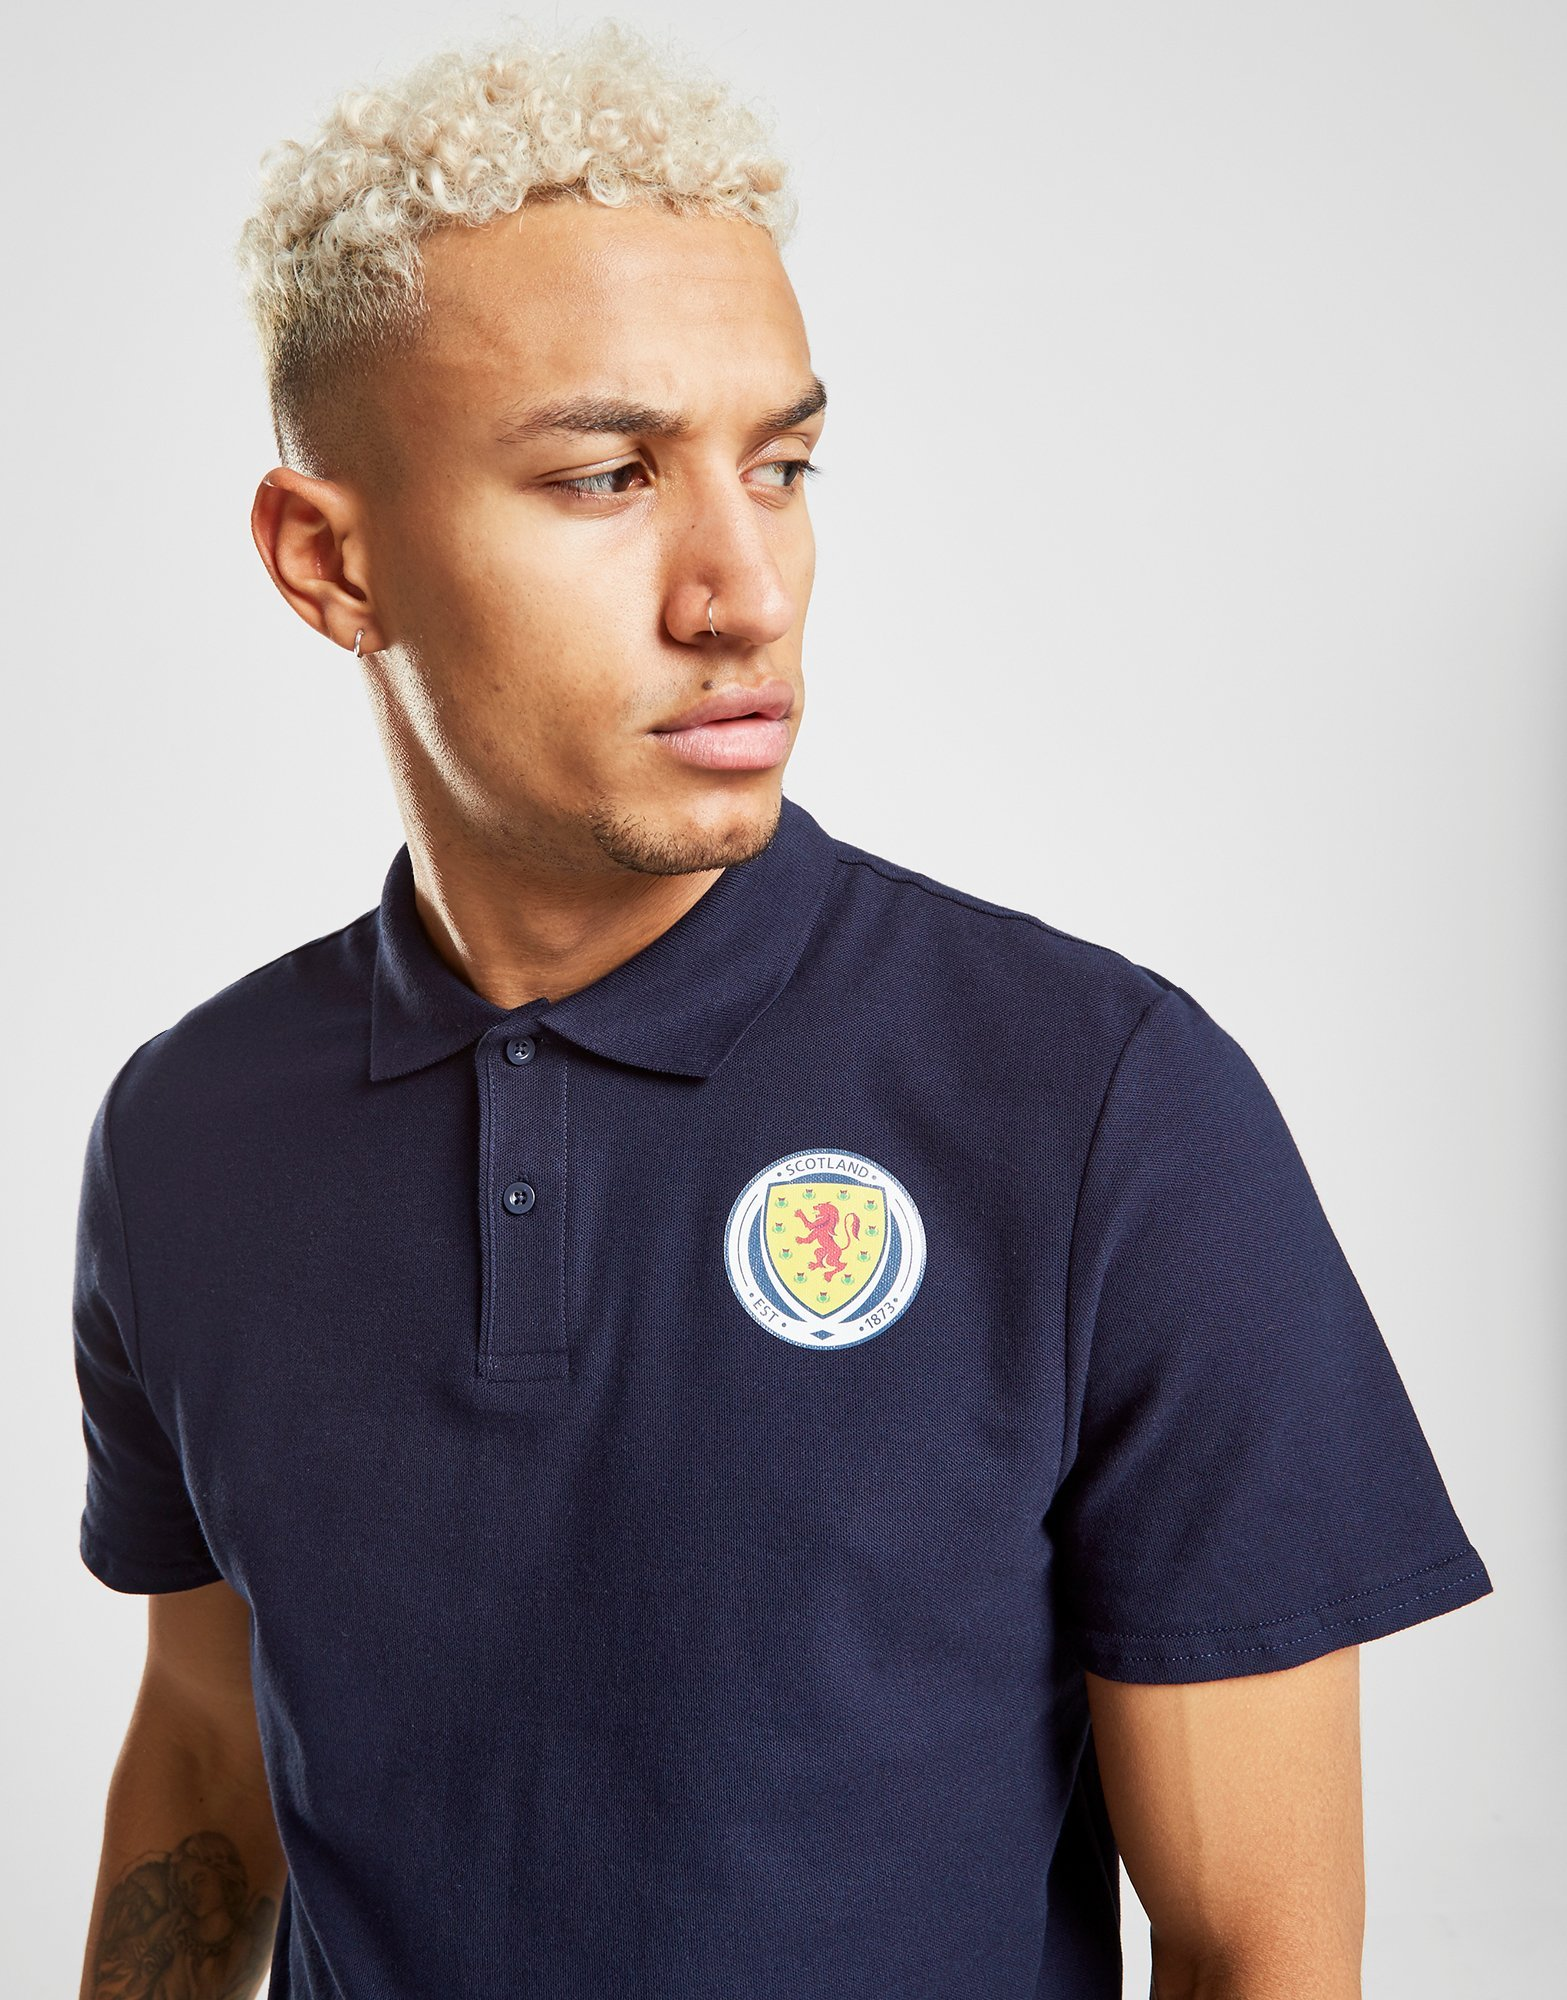 Official Team Scotland FA Polo Shirt